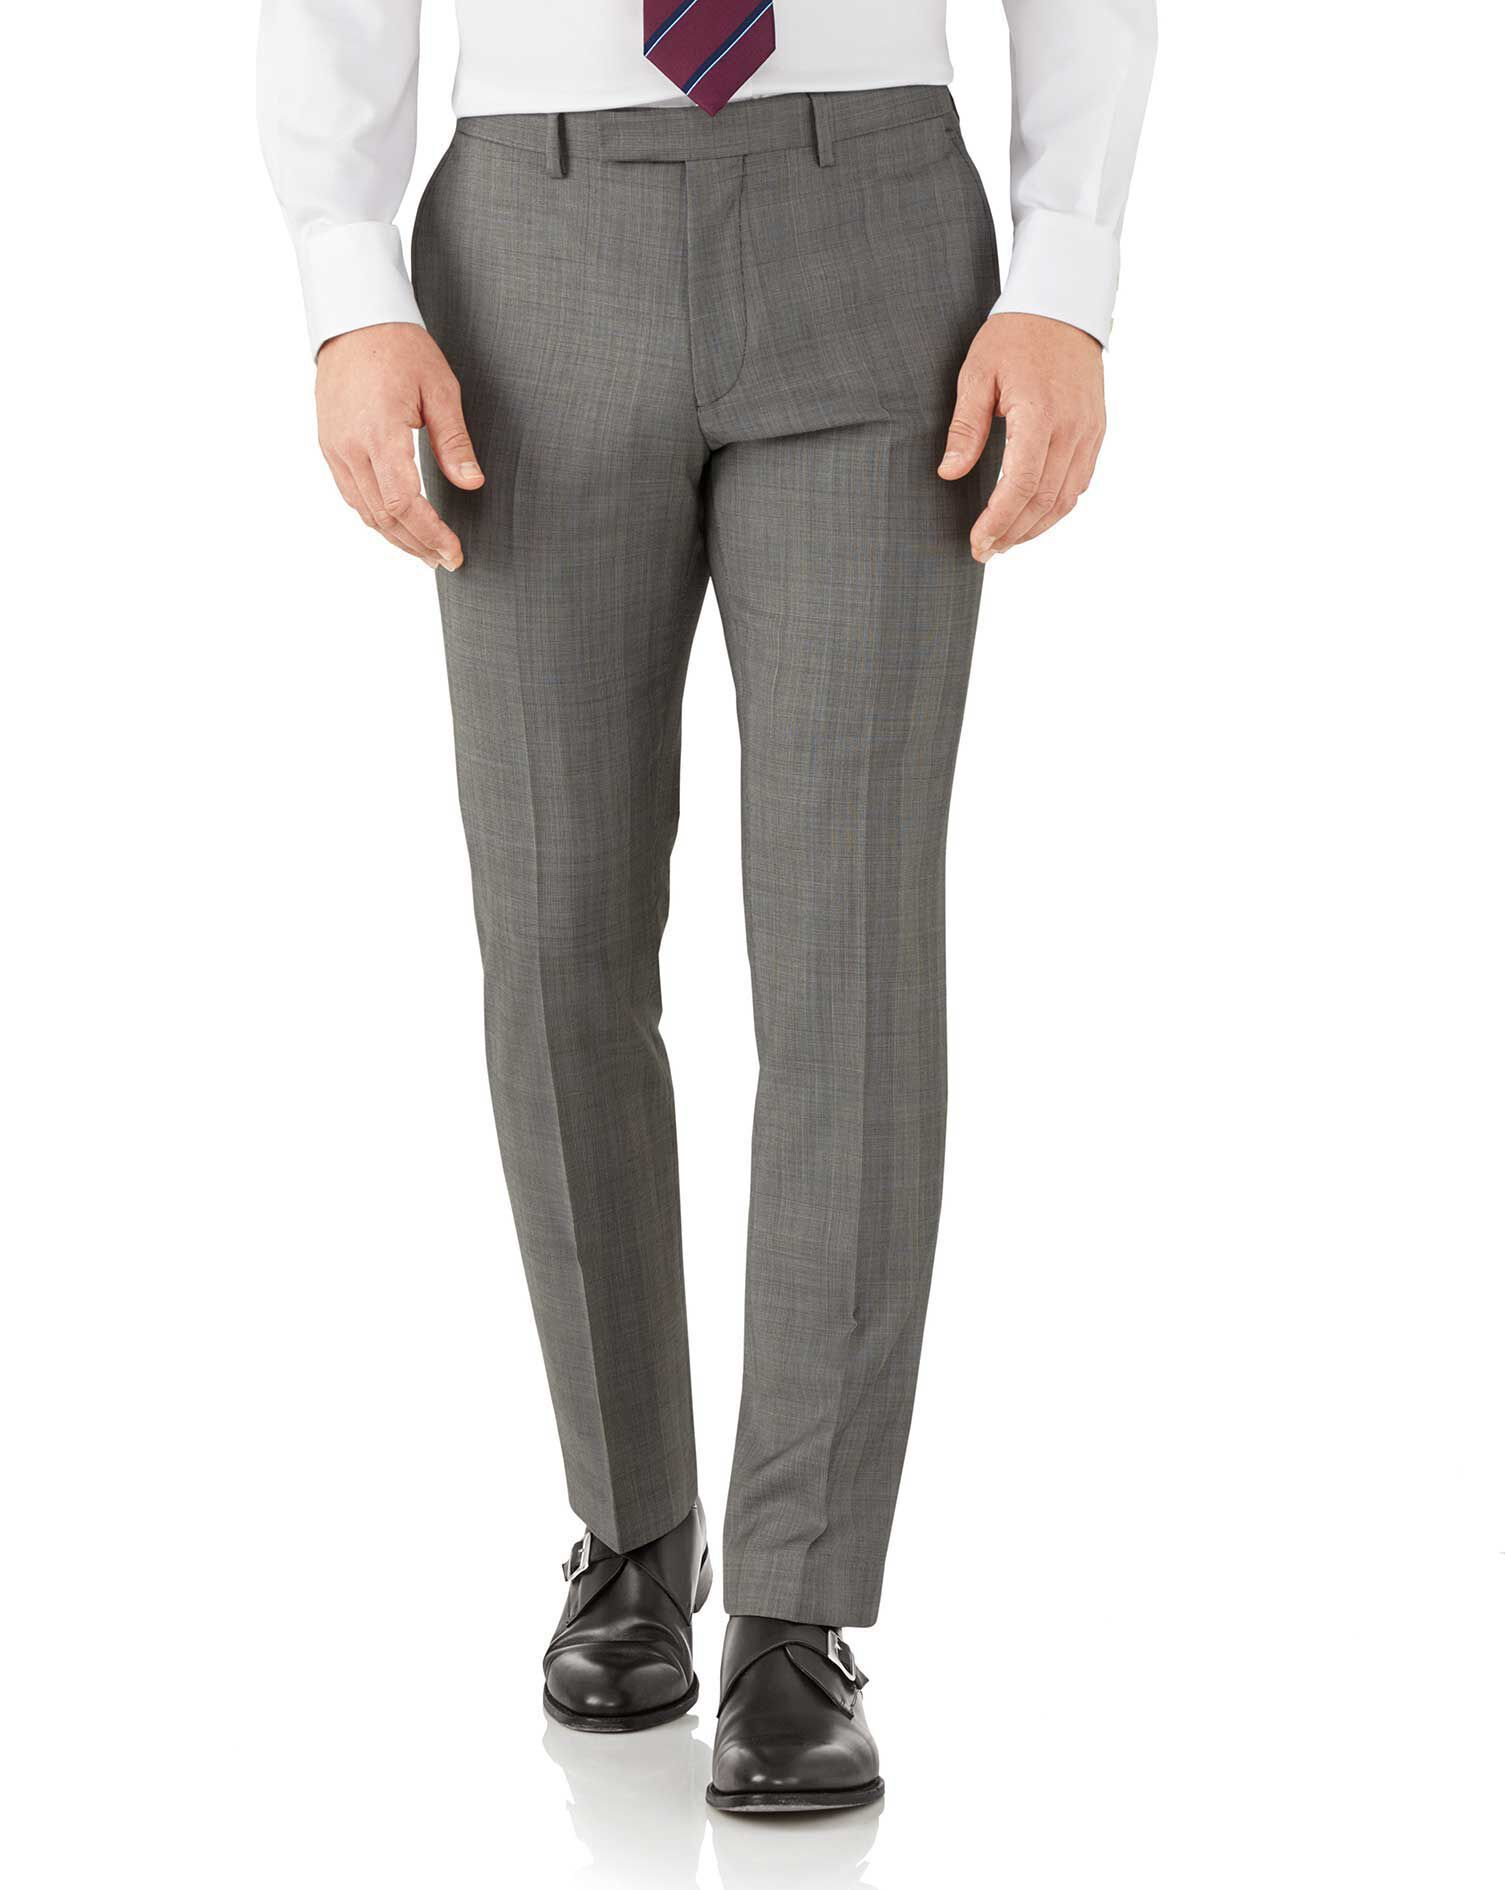 Silver Slim Fit Italian Sharkskin Luxury Check Suit Trousers Size W36 L30 by Charles Tyrwhitt